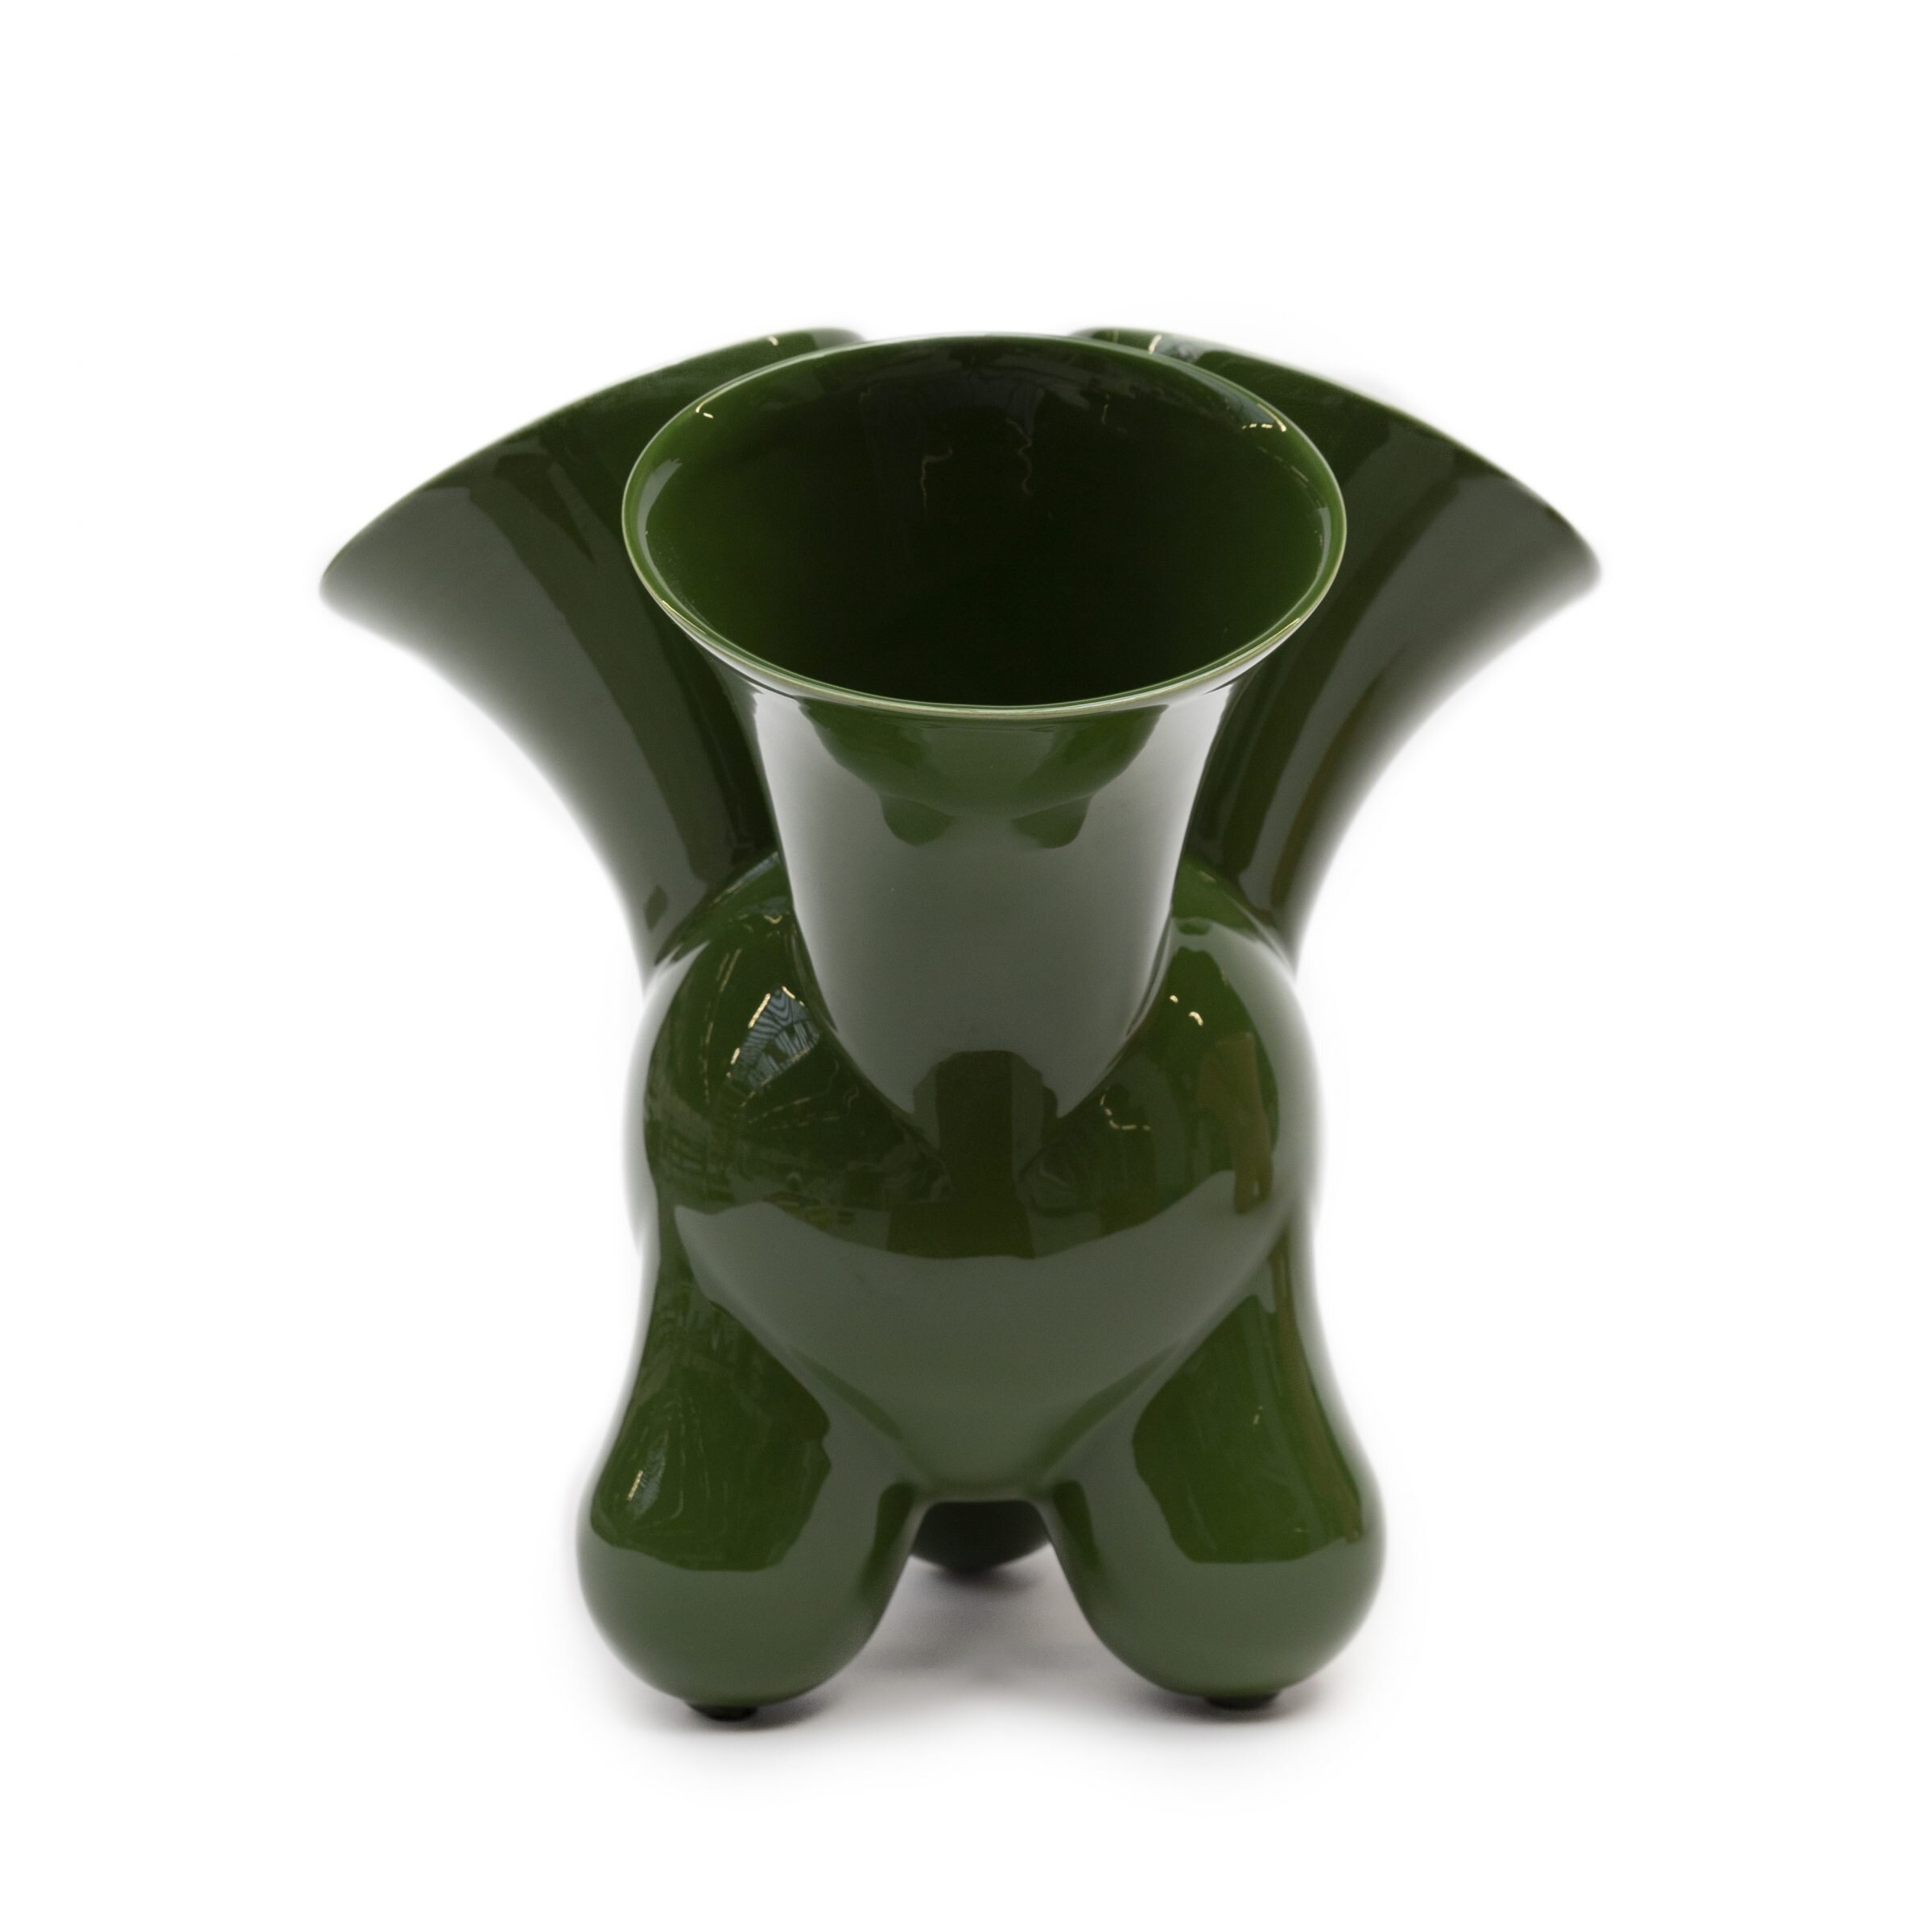 The 'Doodle' vase in Leaf Green by Roderick Vos for Dutch ceramics company Cor Unum.